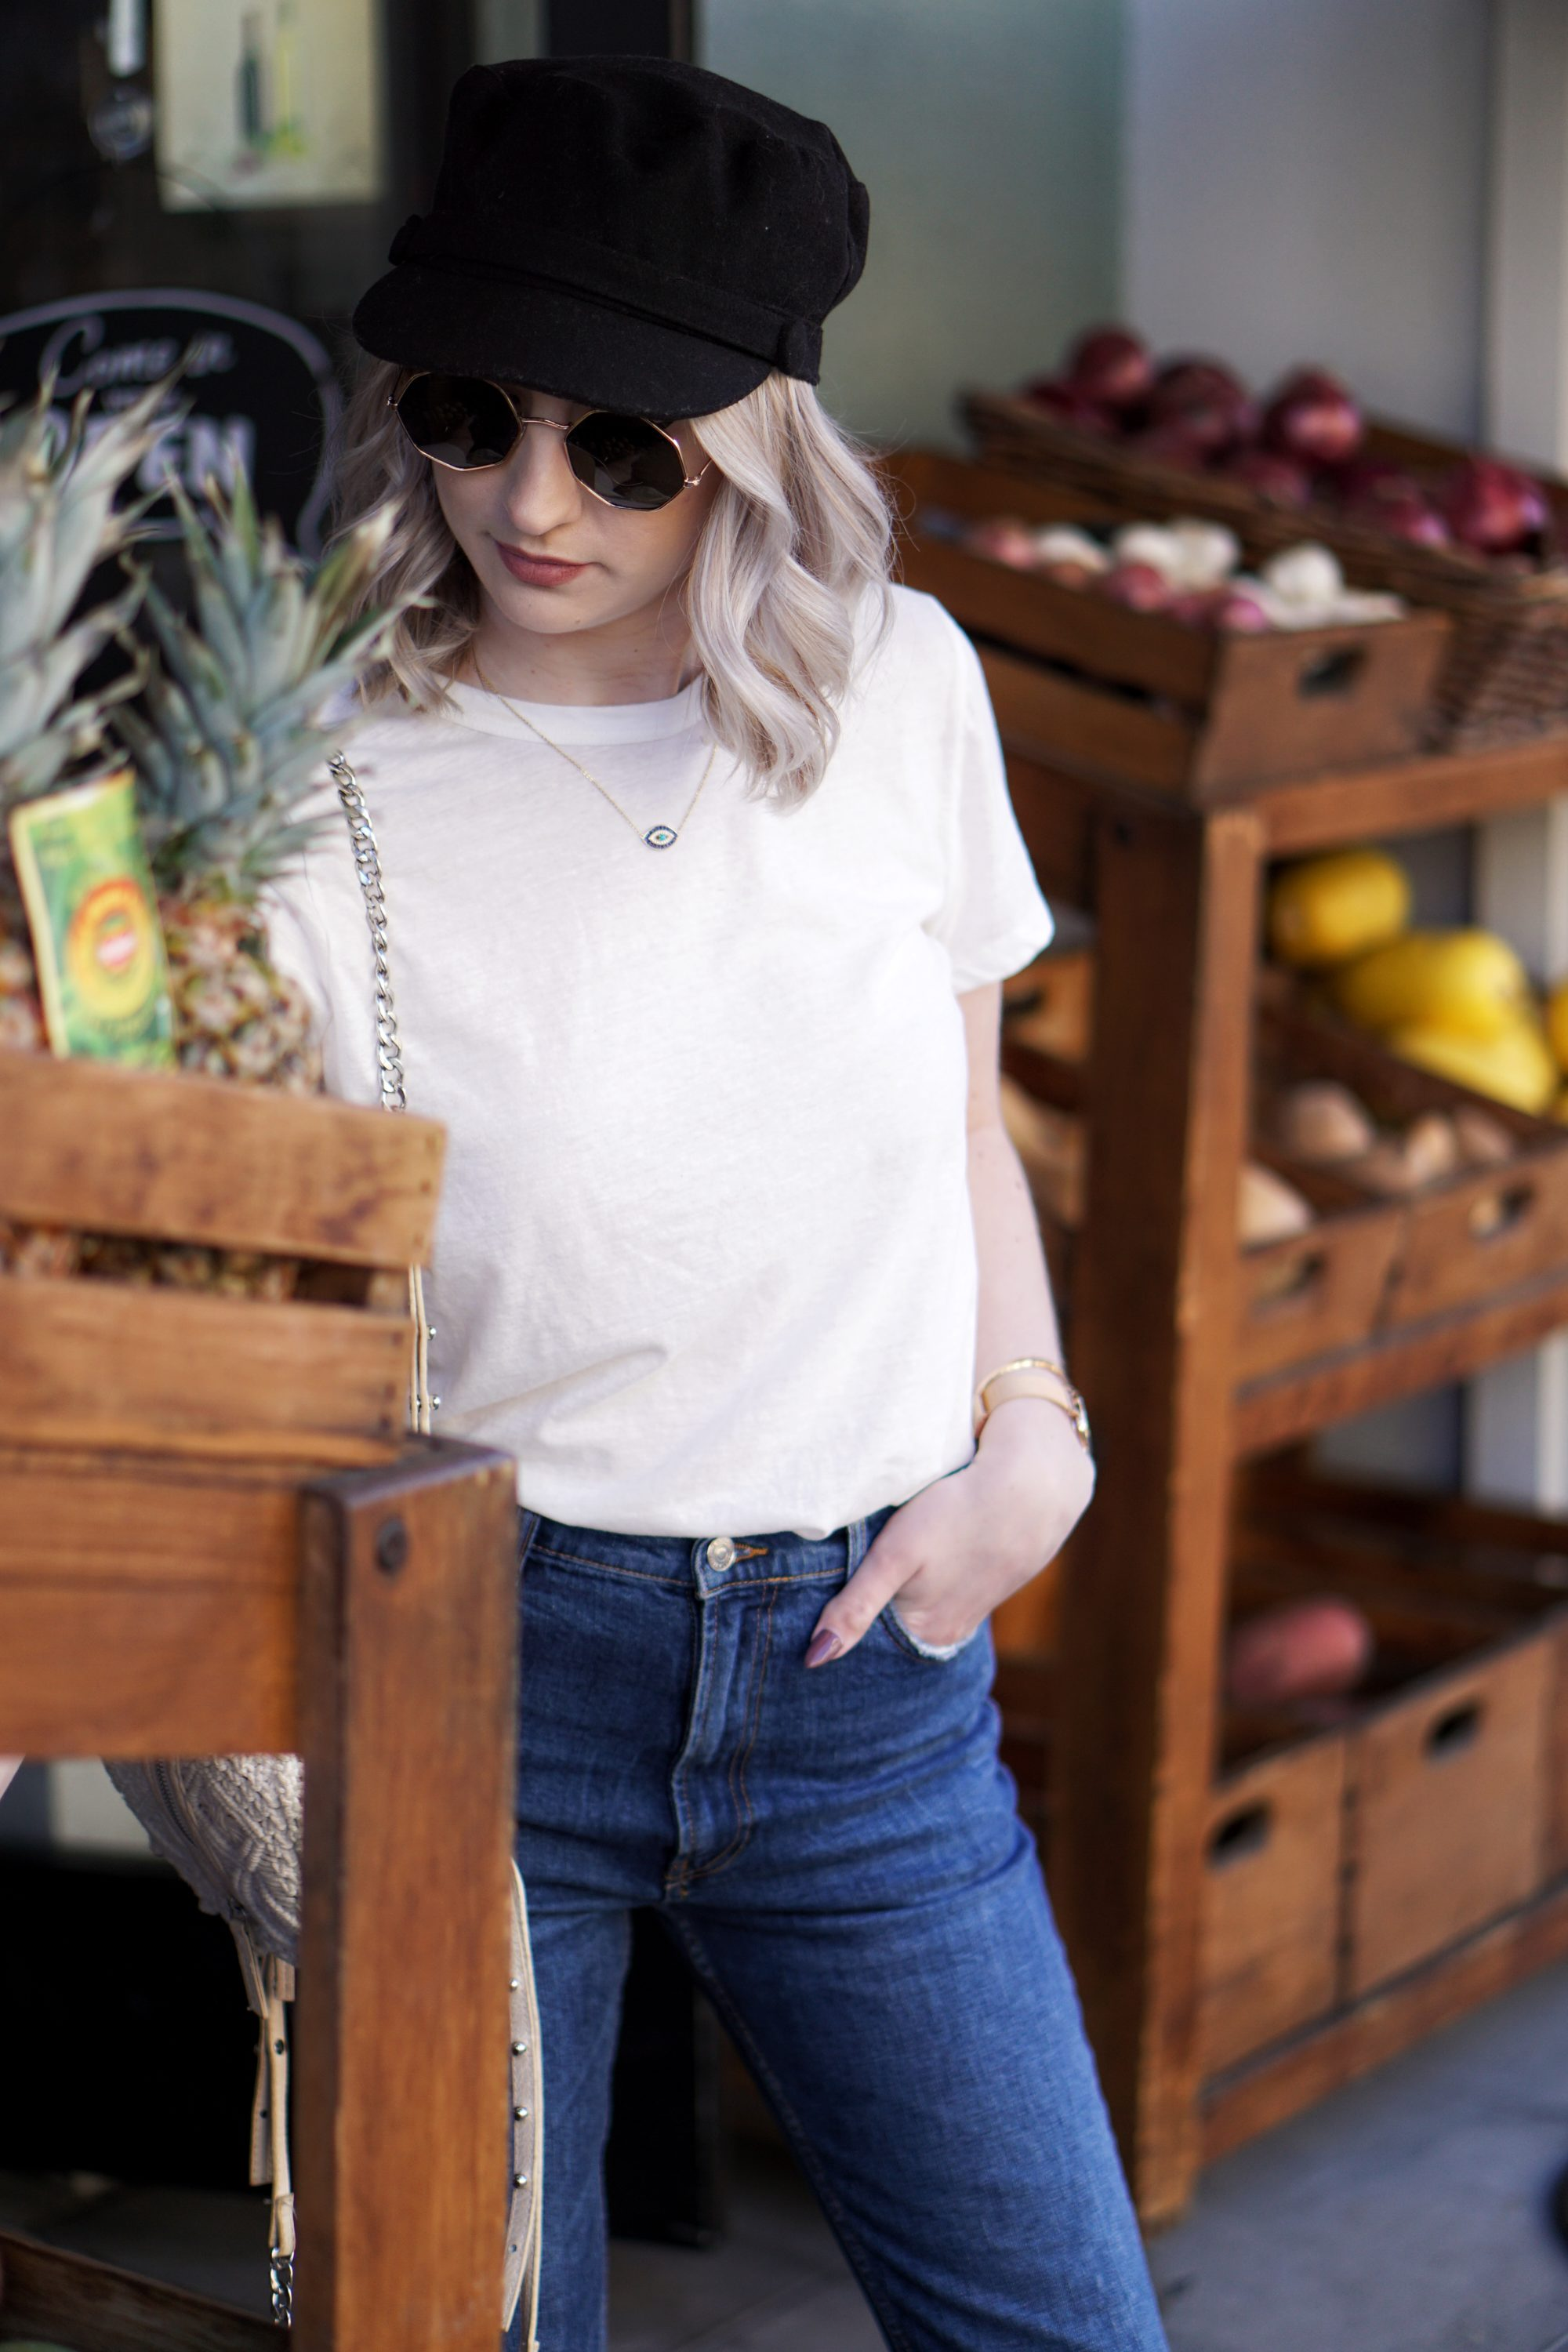 Casual Friday: White Tee & Jeans | Until The Very Trend